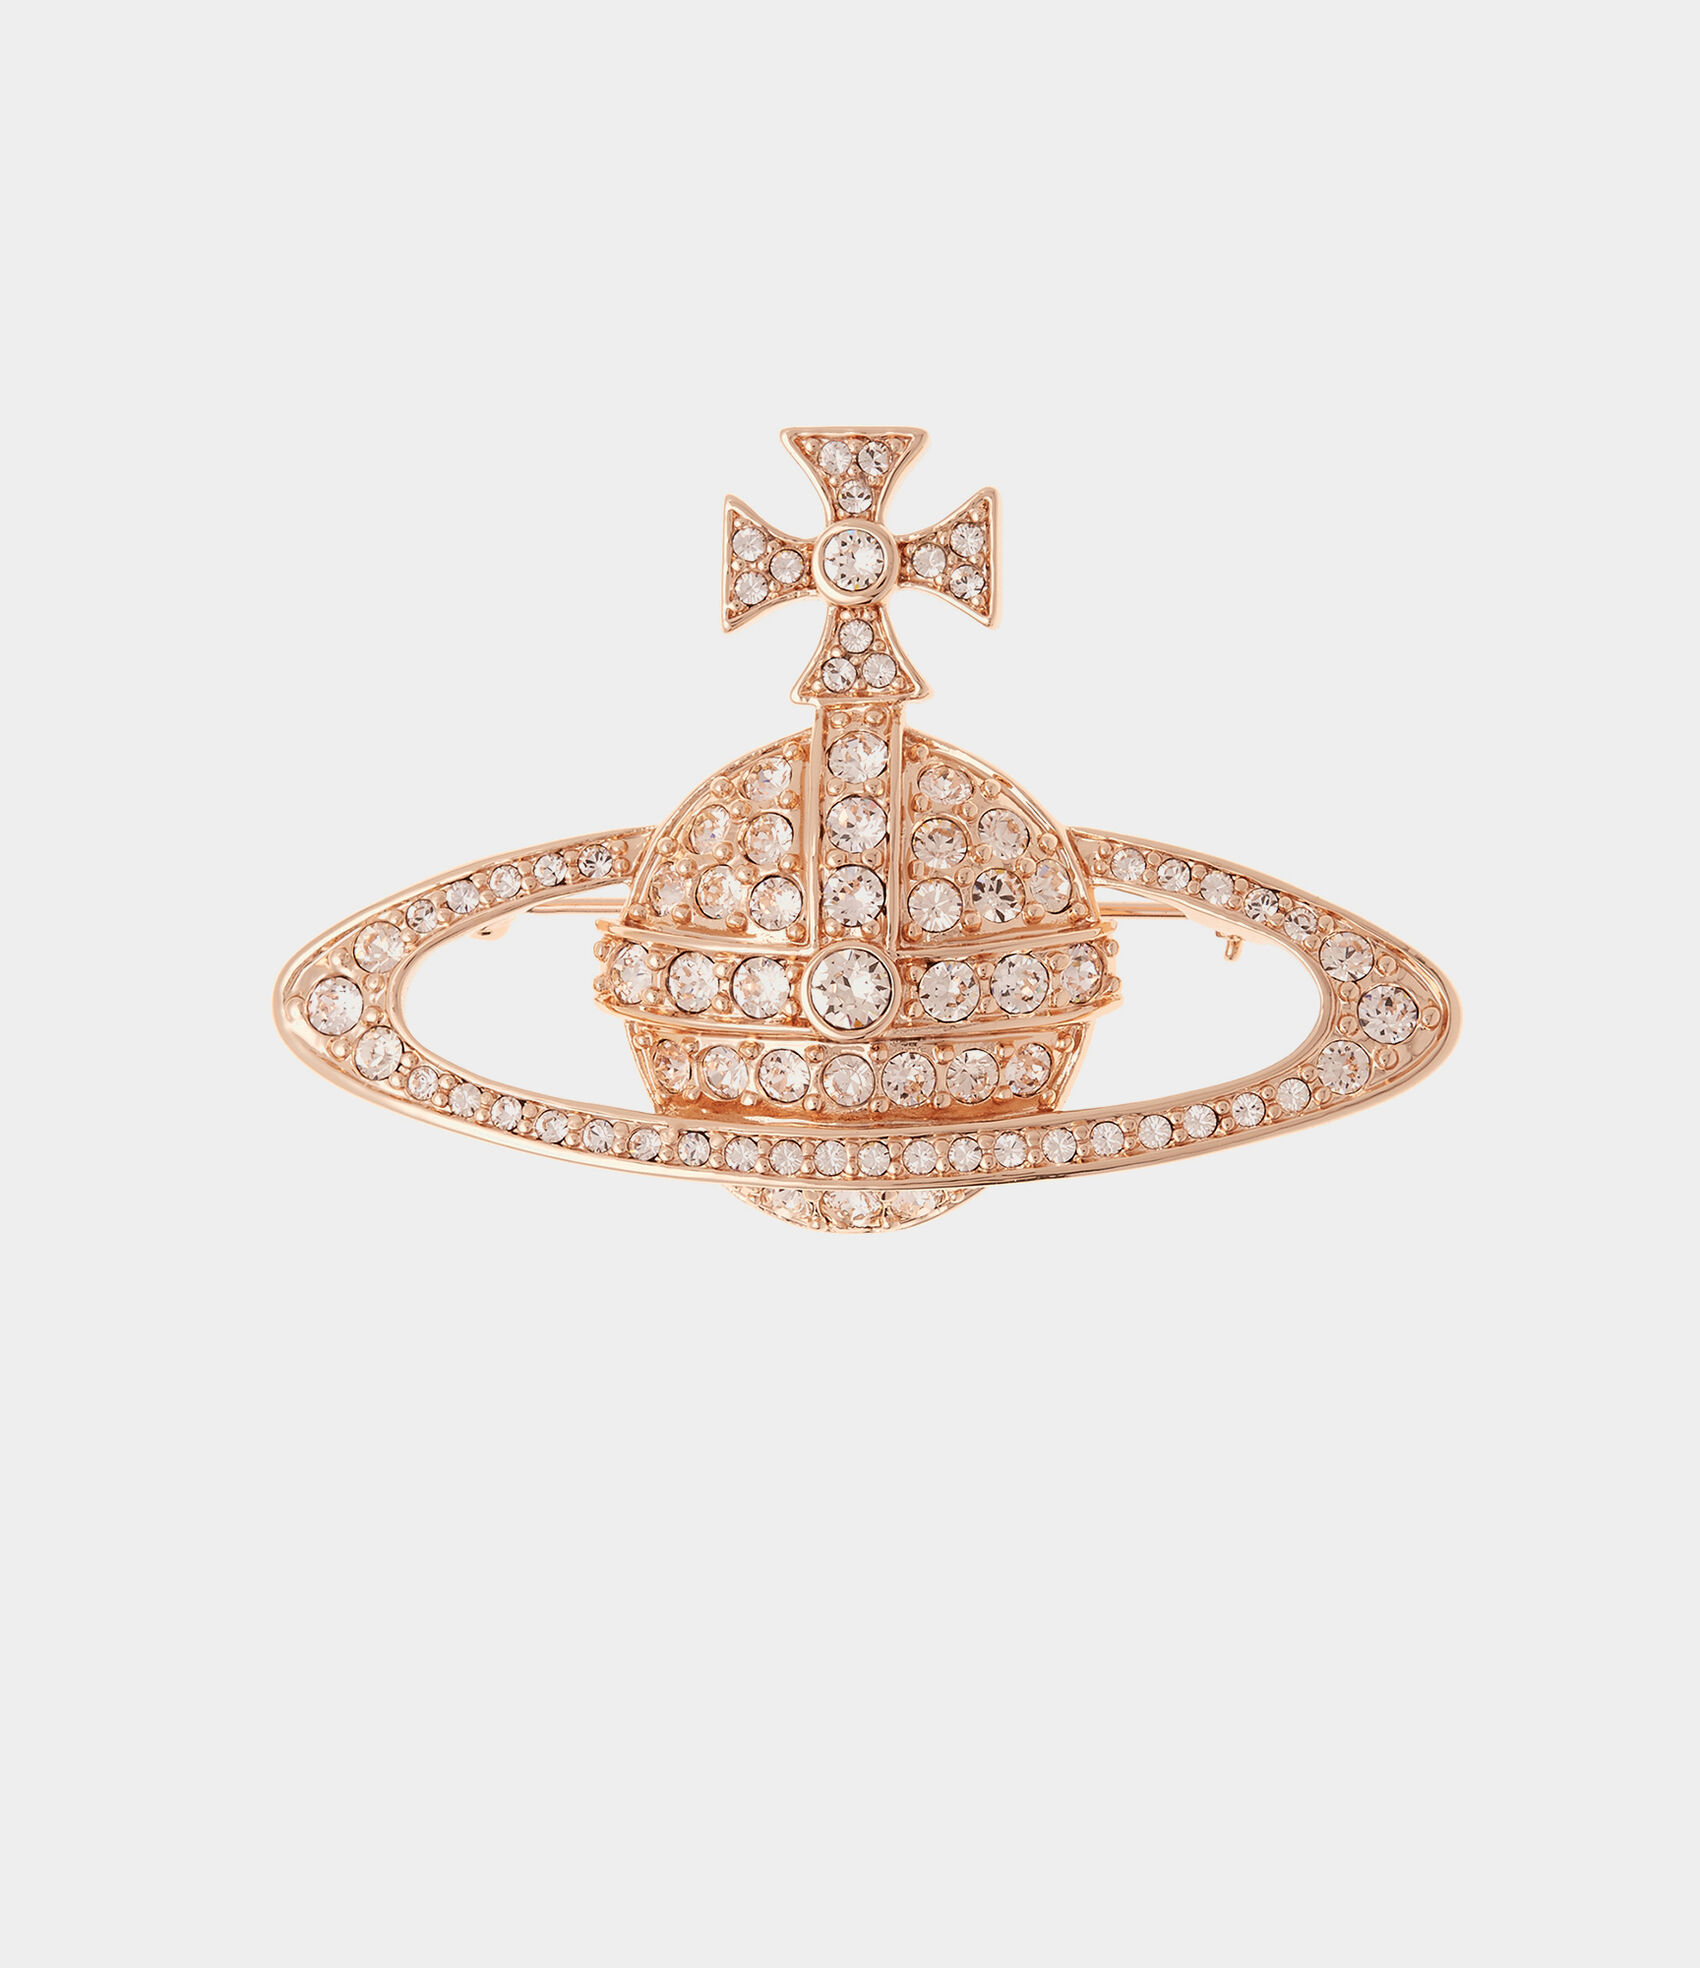 6b1f41d768 Bas Relief Brooch | Women's Brooches and Pins | Vivienne Westwood